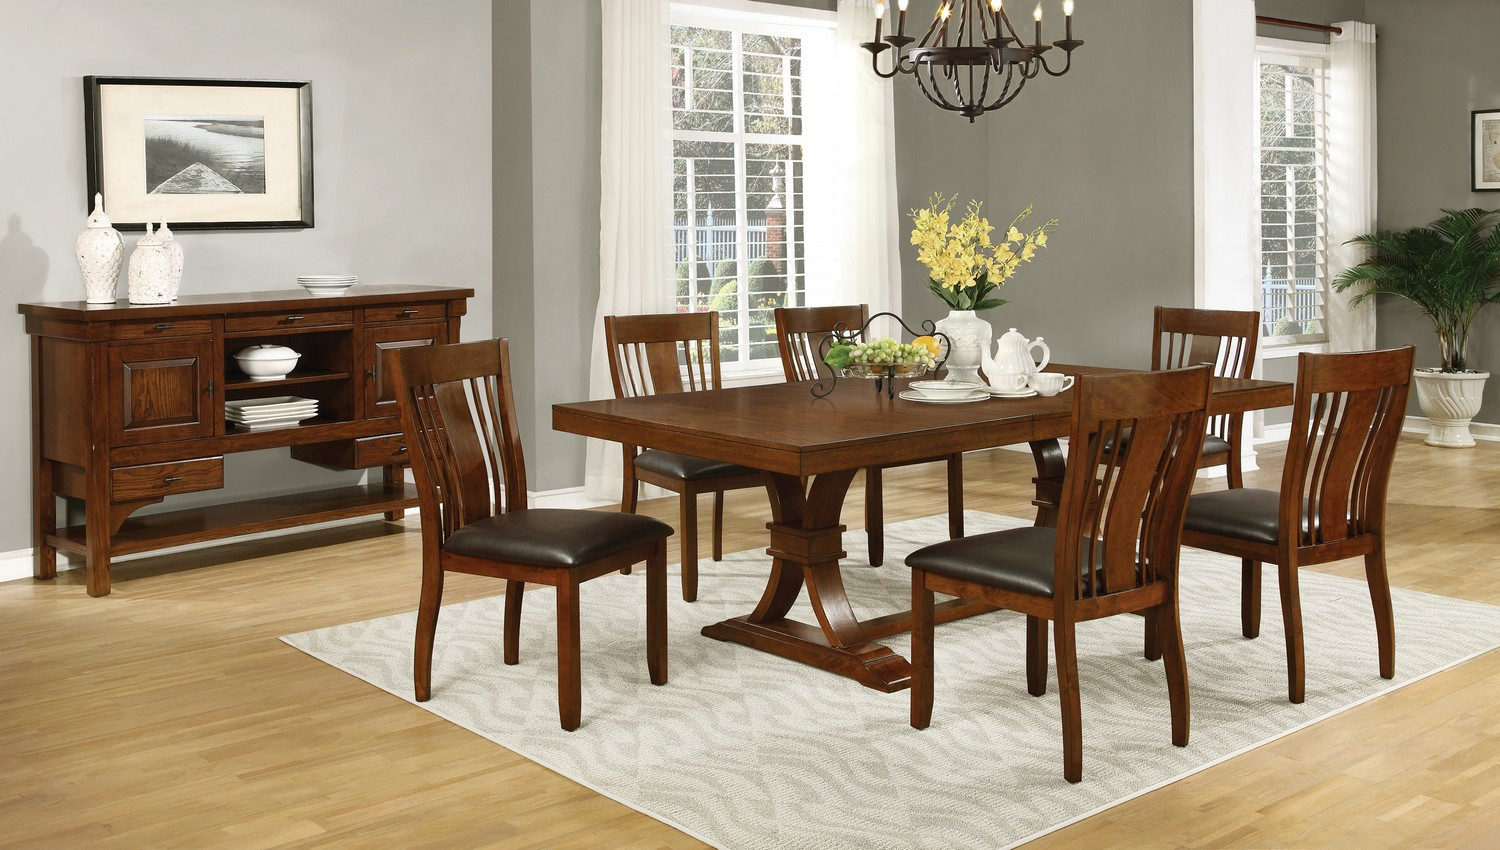 Coaster Abrams Dining Set - Truffle